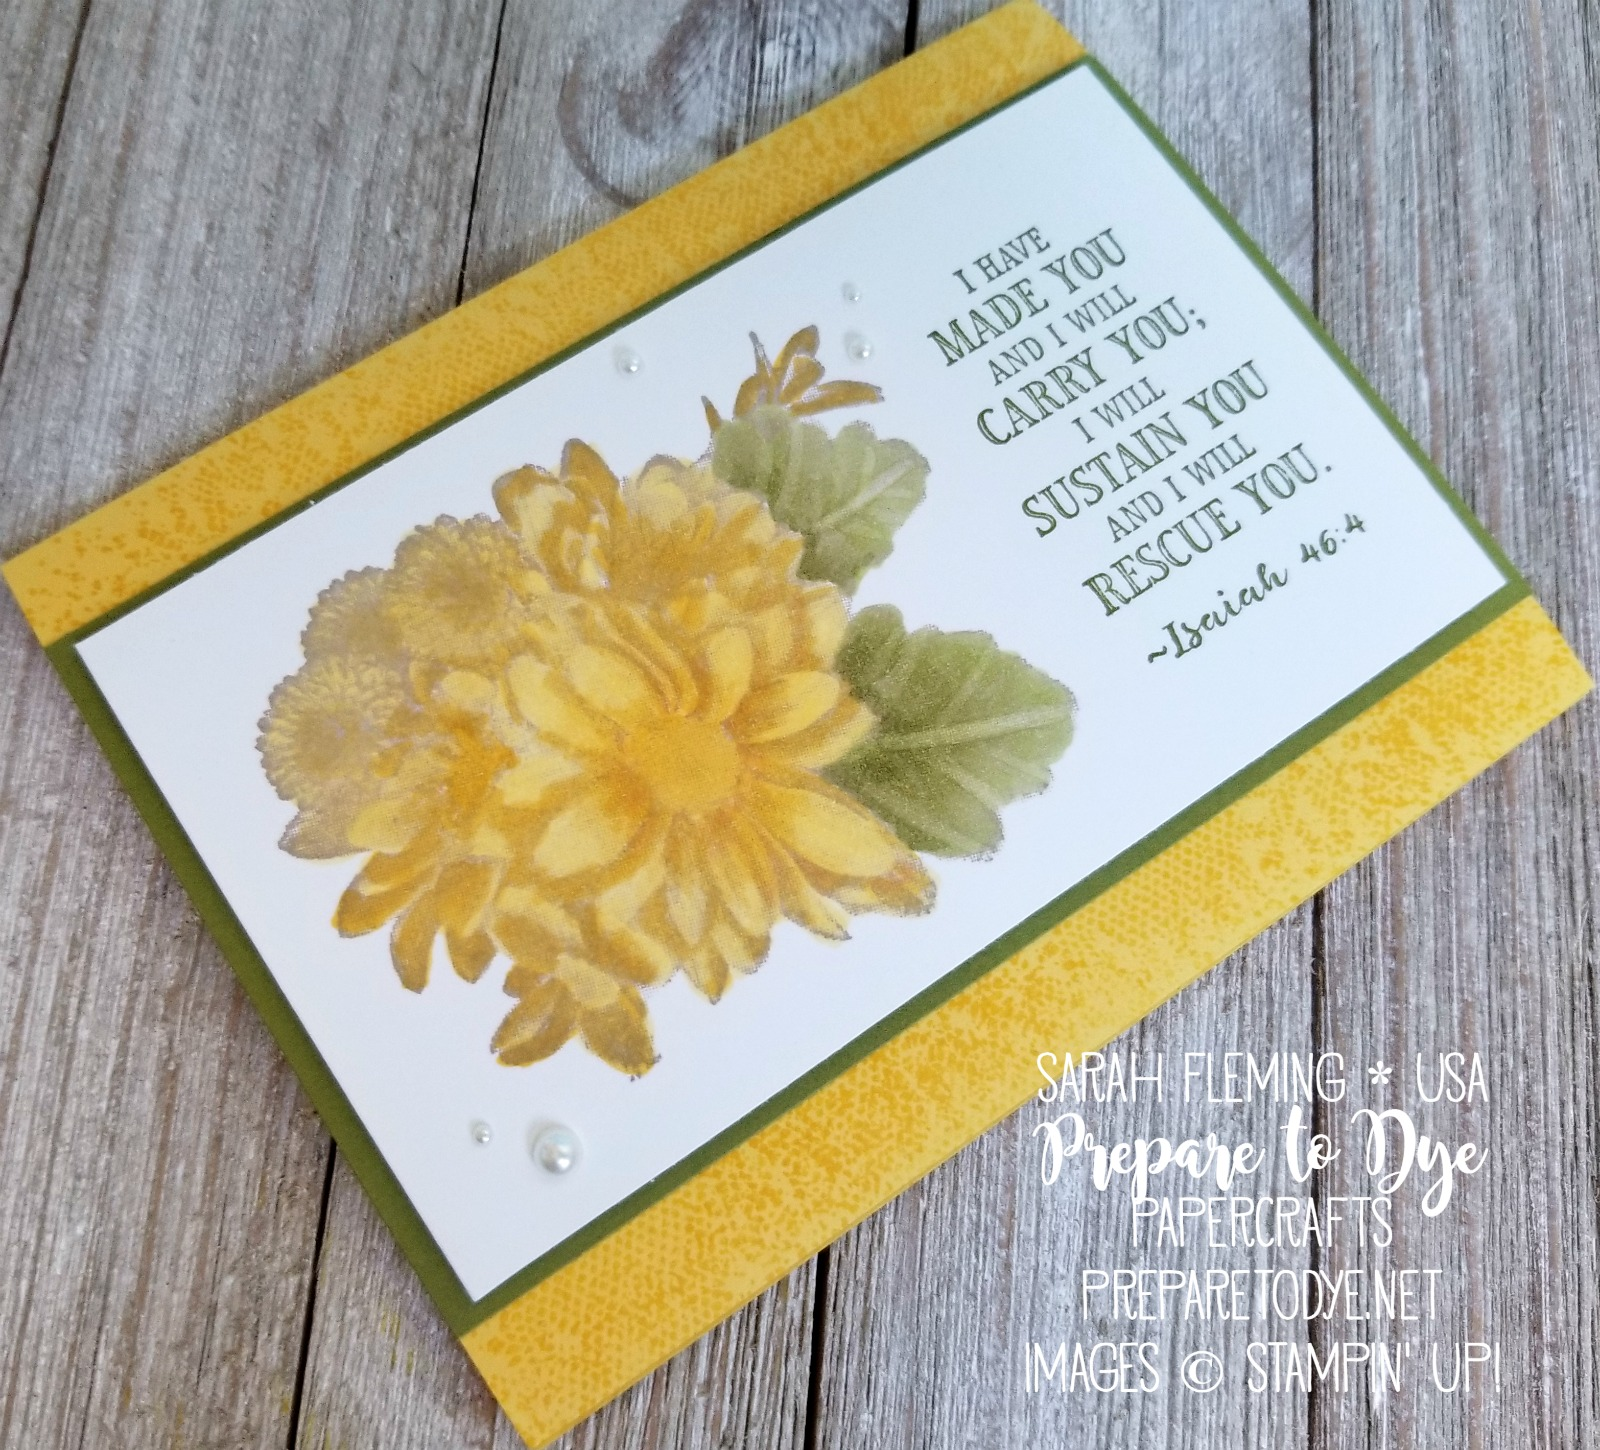 Stampin' Up! Heartfelt Blooms and Hold on to Hope with Touches of Texture - Sarah Fleming - Prepare to Dye Papercrafts